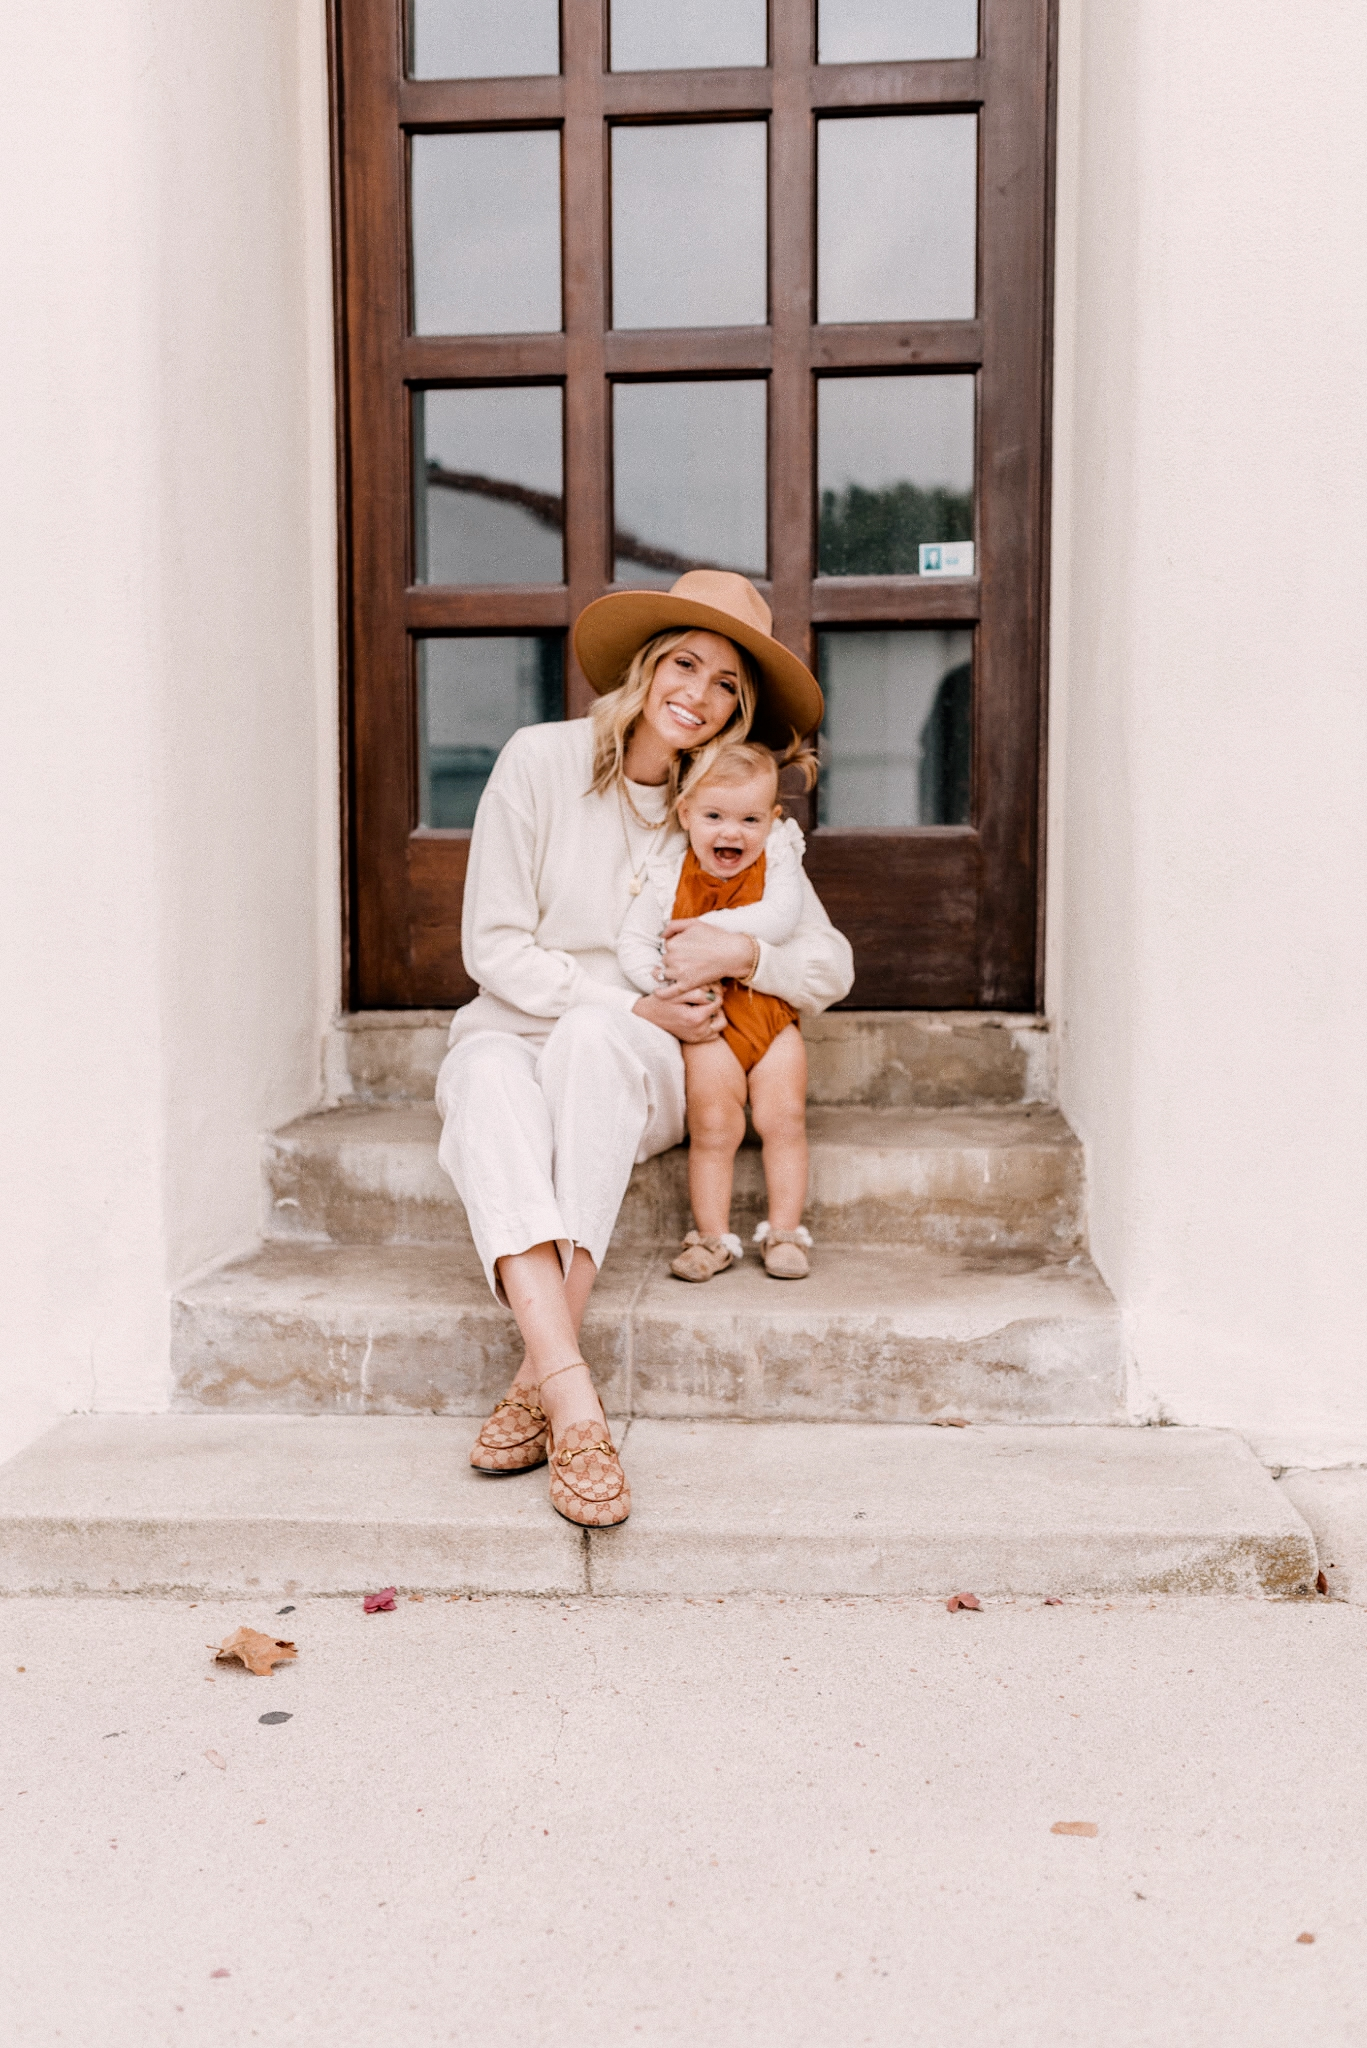 Fall fedora Hats |Fall fedora Hats | Fedora Hats by popular San Diego fashion blog, Navy Grace: image of a mom sitting on some steps with her baby daughter and wearing a Madewell Brushed Knit Puff-Sleeve Top, Everlane The Arc Canvas Pant,Gucci Women's Jordaan GG Canvas Loafers and Free People Rancher Felt Hat.